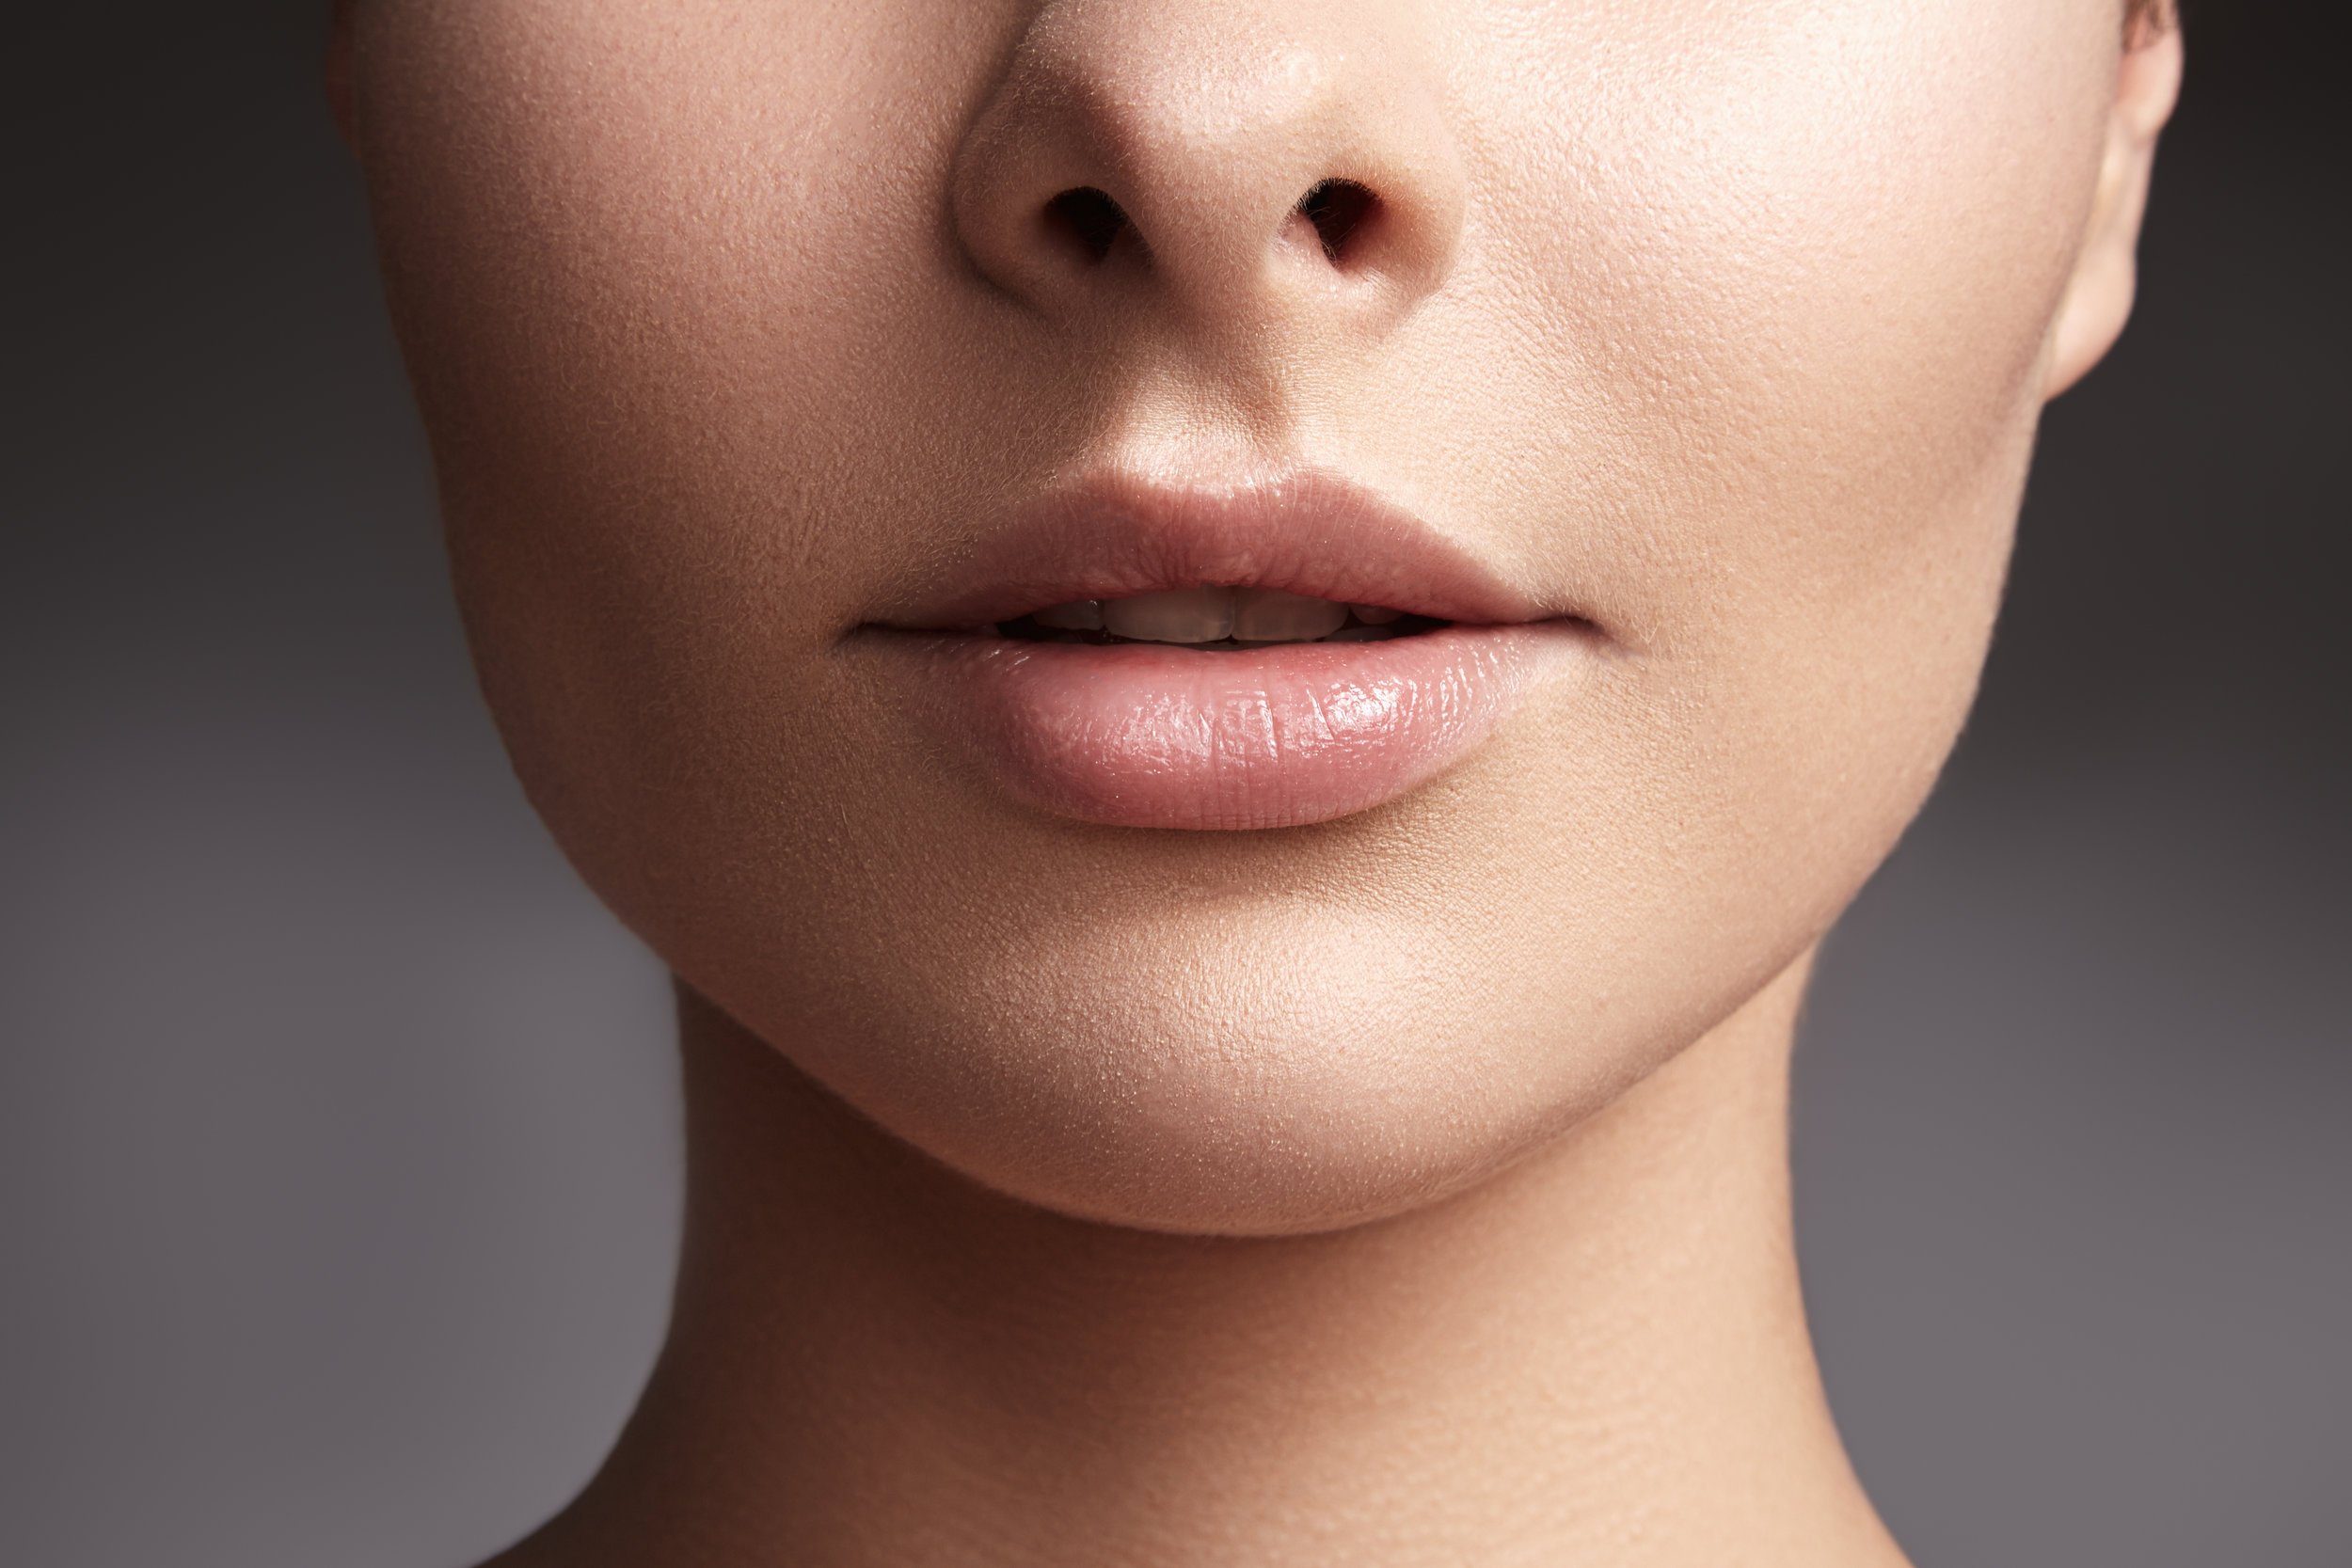 About Thread Lift - Thread Lifts are on the cutting edge of aesthetic medicine, and they are here at Beyond Skin!Thread Lifts can be performed in office, with minimal downtime, for a drastic change in appearance of sagging skin, lines, and wrinkles. Please schedule a consult with our physician to determine your eligibility for a Thread Lift